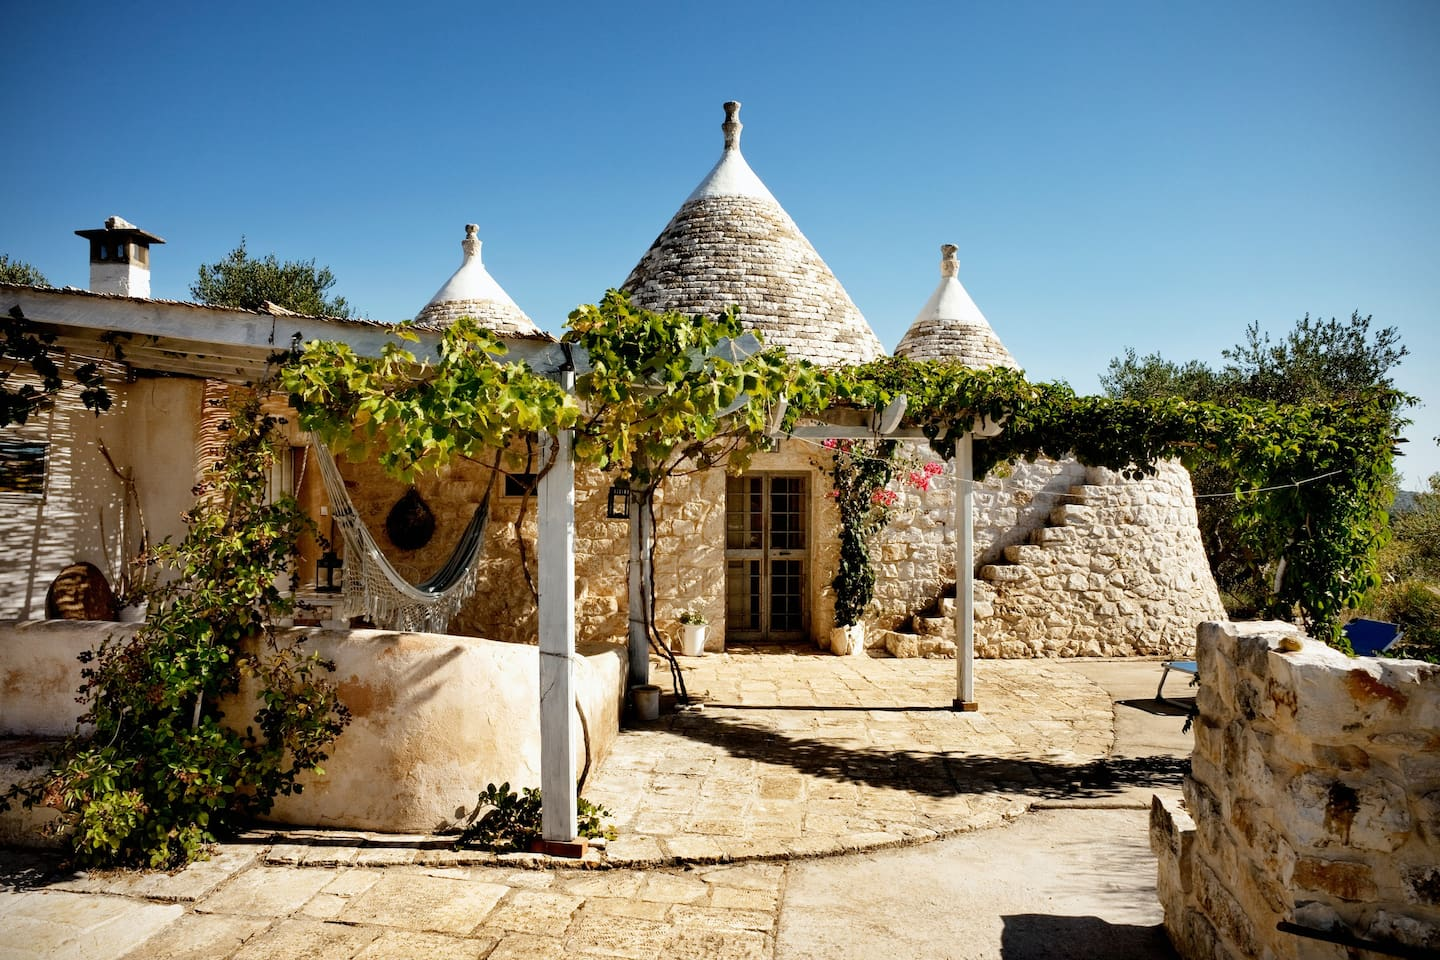 Trullo-style home for ancestry travel